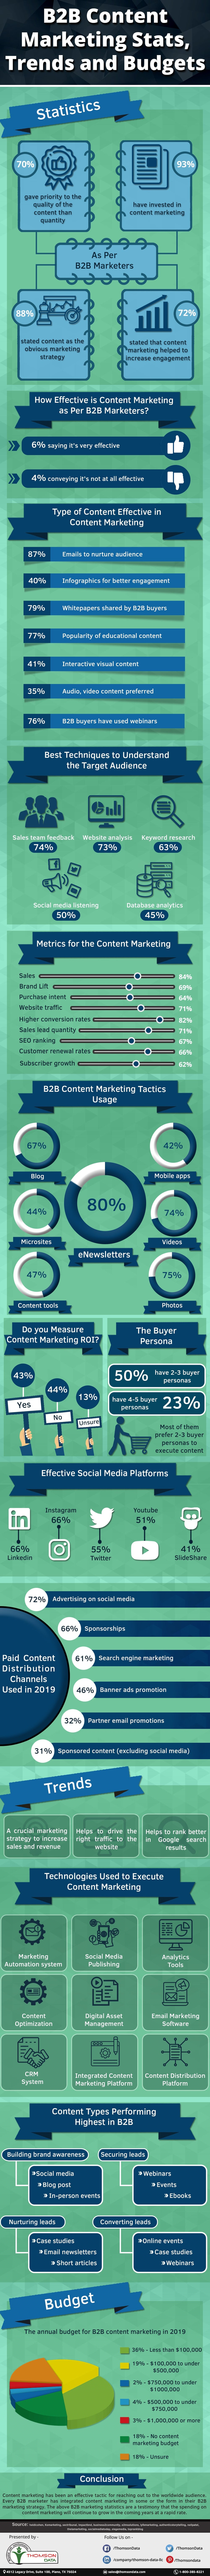 B2B Content Marketing Stats, Trends and Budgets